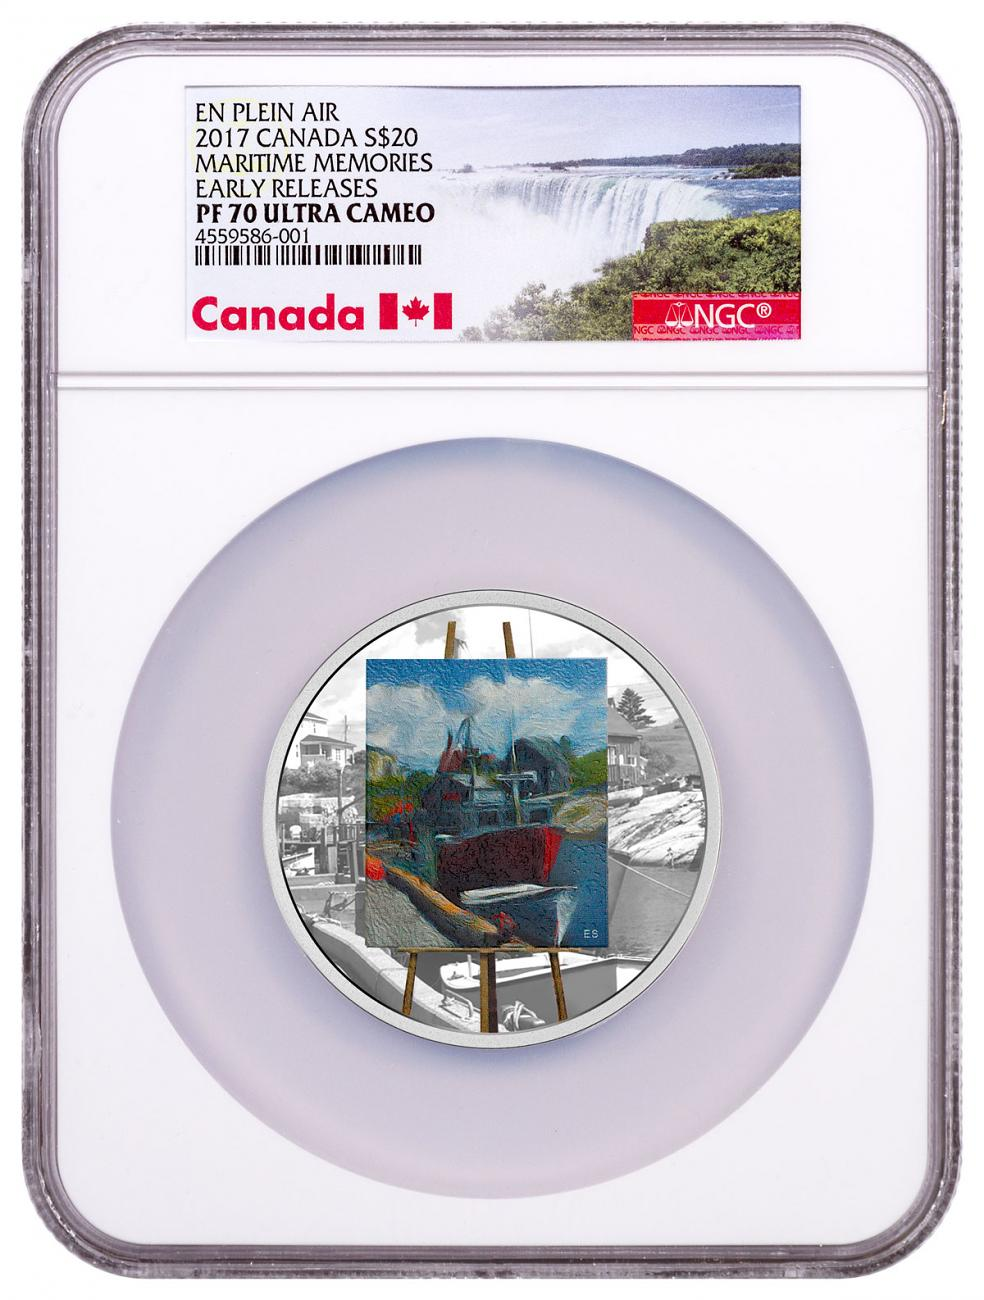 2017 Canada En Plein Air - Maritime Memories 1 oz Silver Colorized Proof $20 Coin NGC PF70 UC ER Exclusive Canada Label